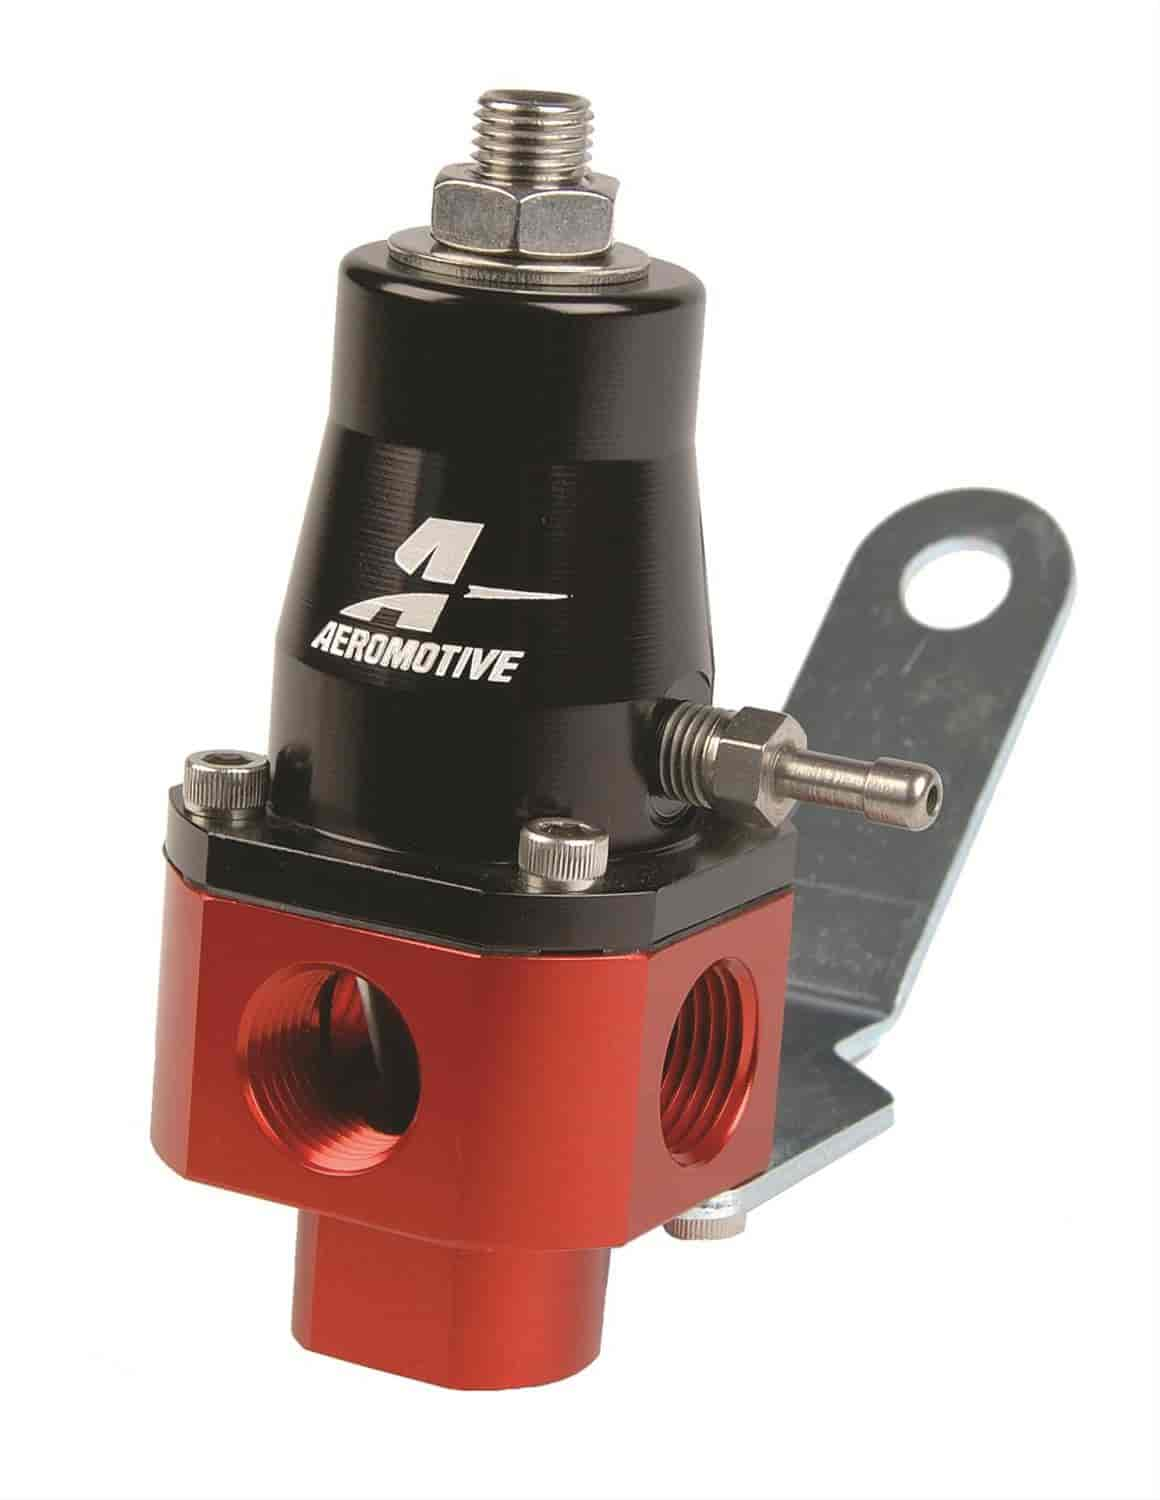 Aeromotive 13301 - Aeromotive Universal Bypass Regulator